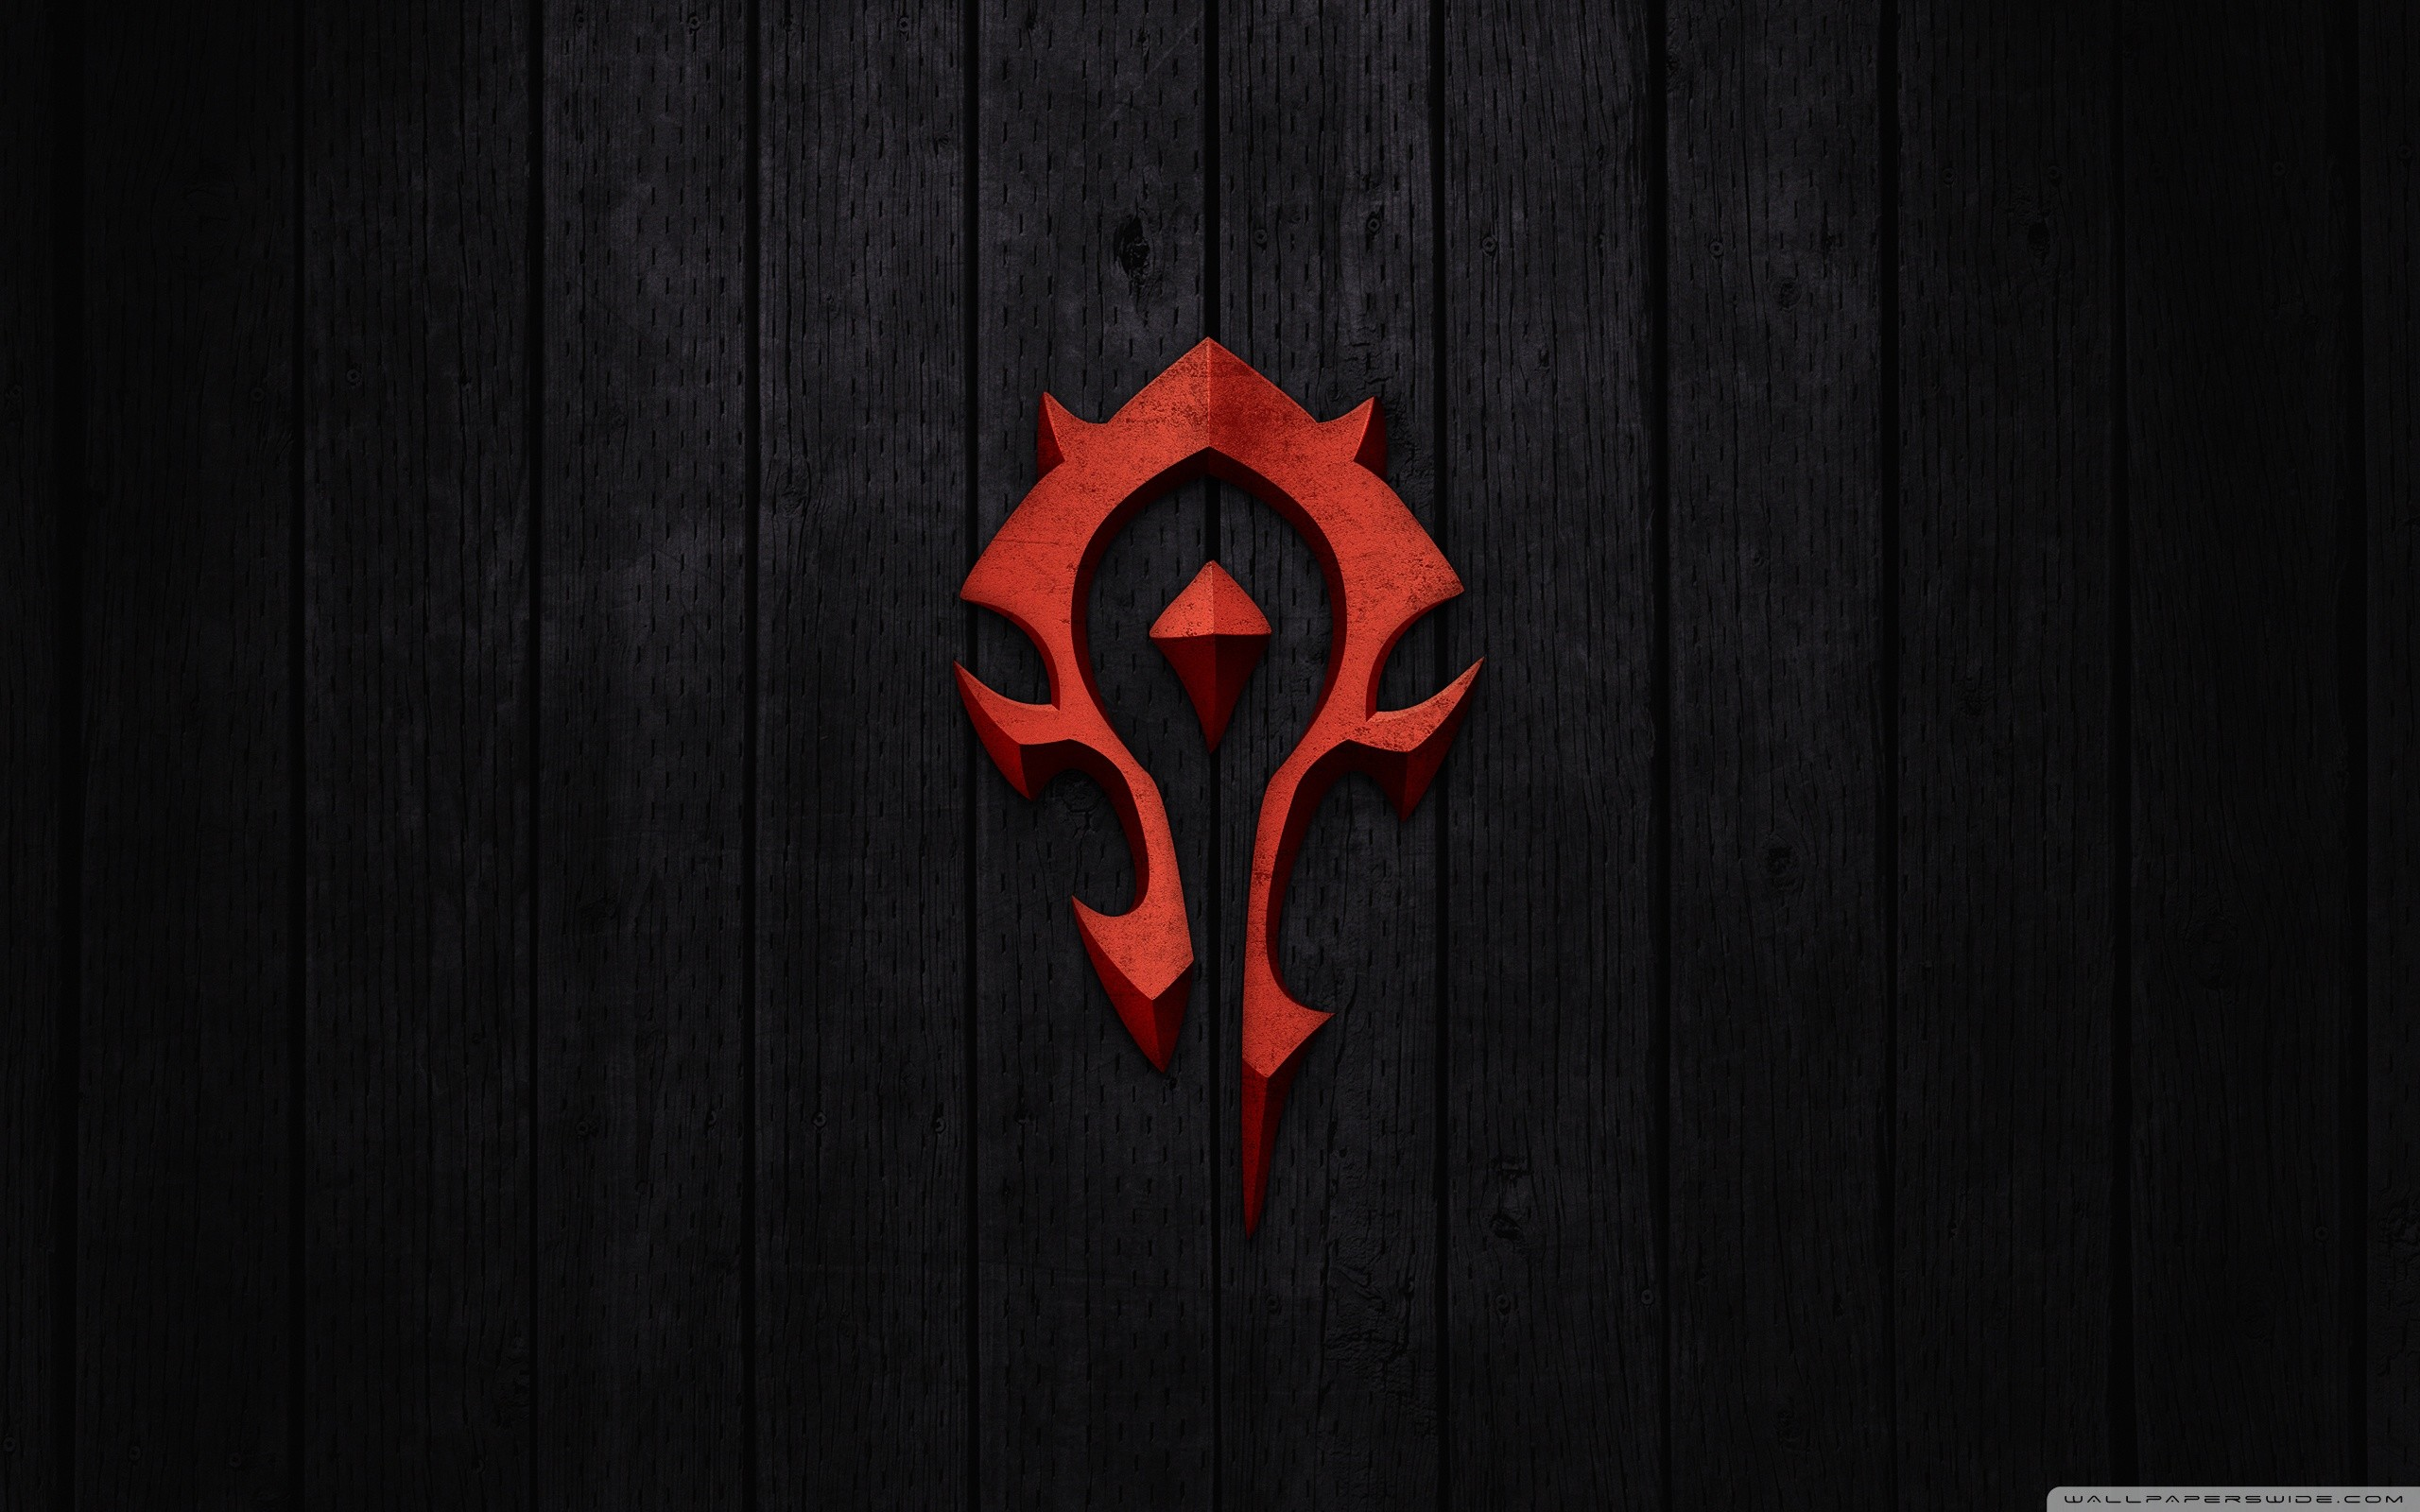 World of Warcraft – Horde Sign HD Wide Wallpaper for Widescreen